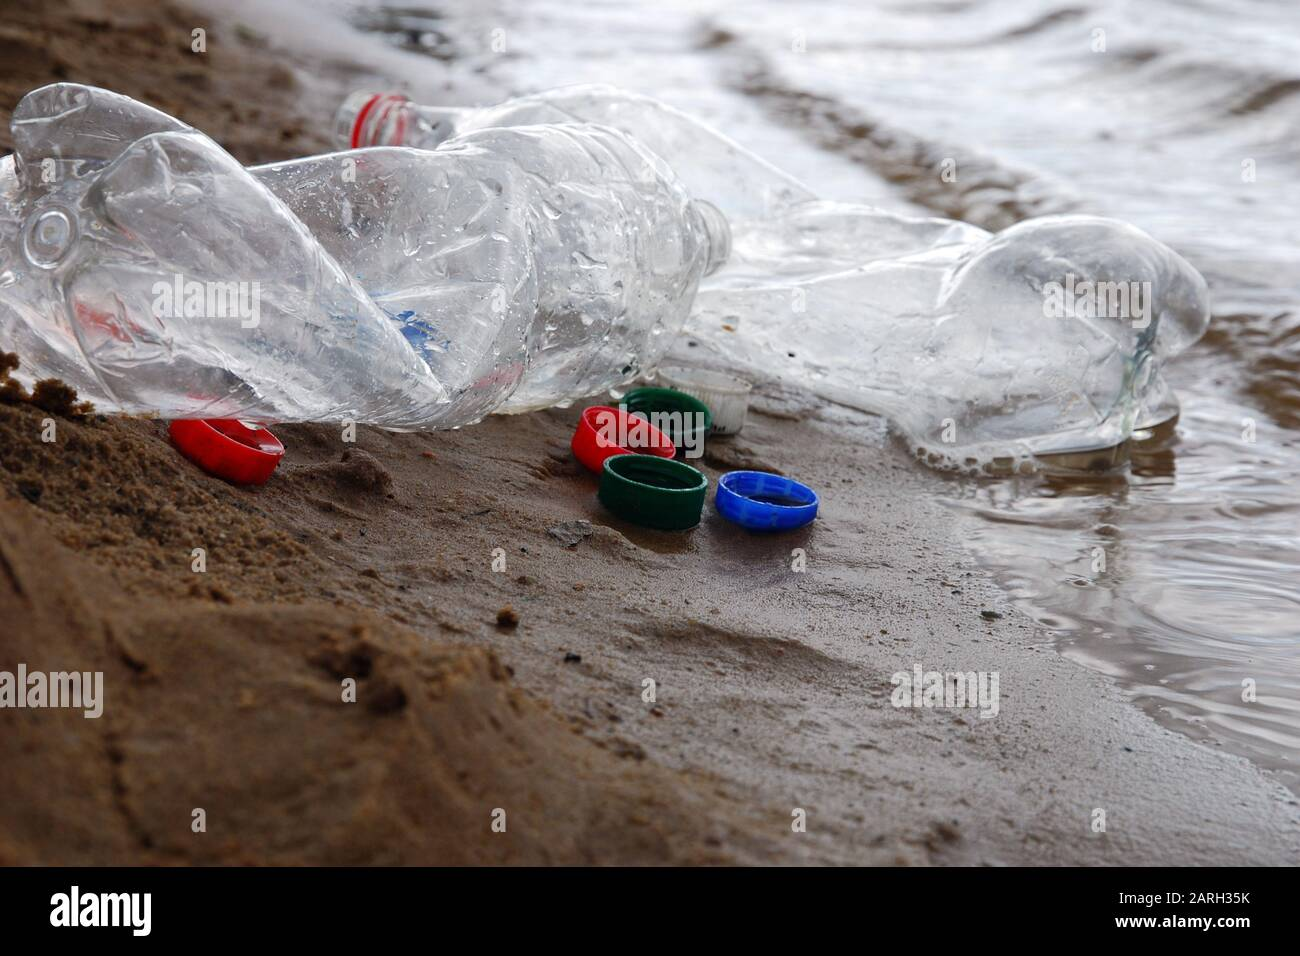 Plastic waste left by campers at river or lake shore, bottles and plastic bottle caps on the sand in the water close up Stock Photo